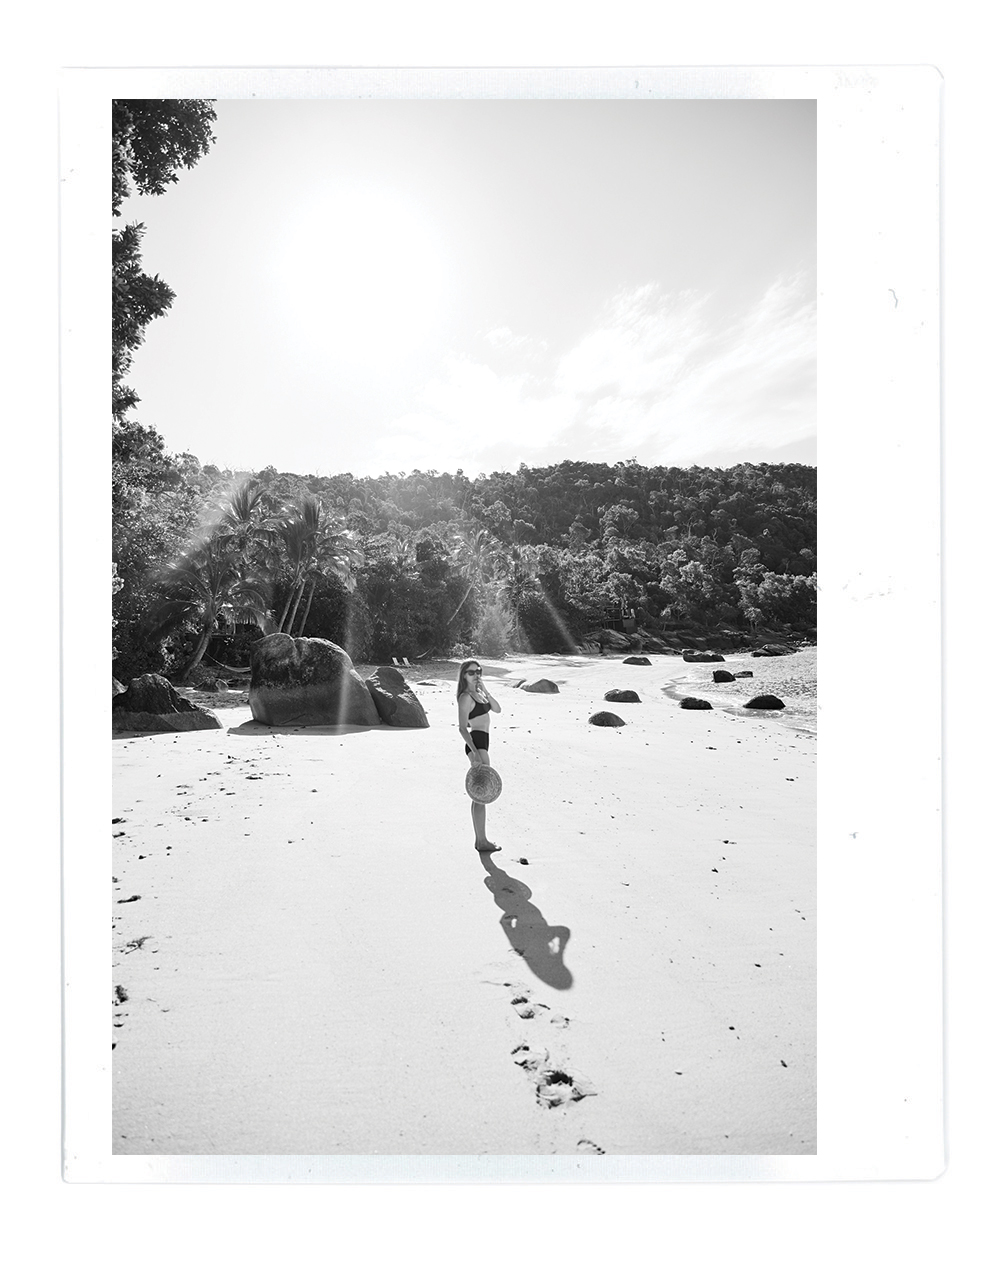 Photo diary, bedarra island, great barrier reef, queensland, oracle, fox